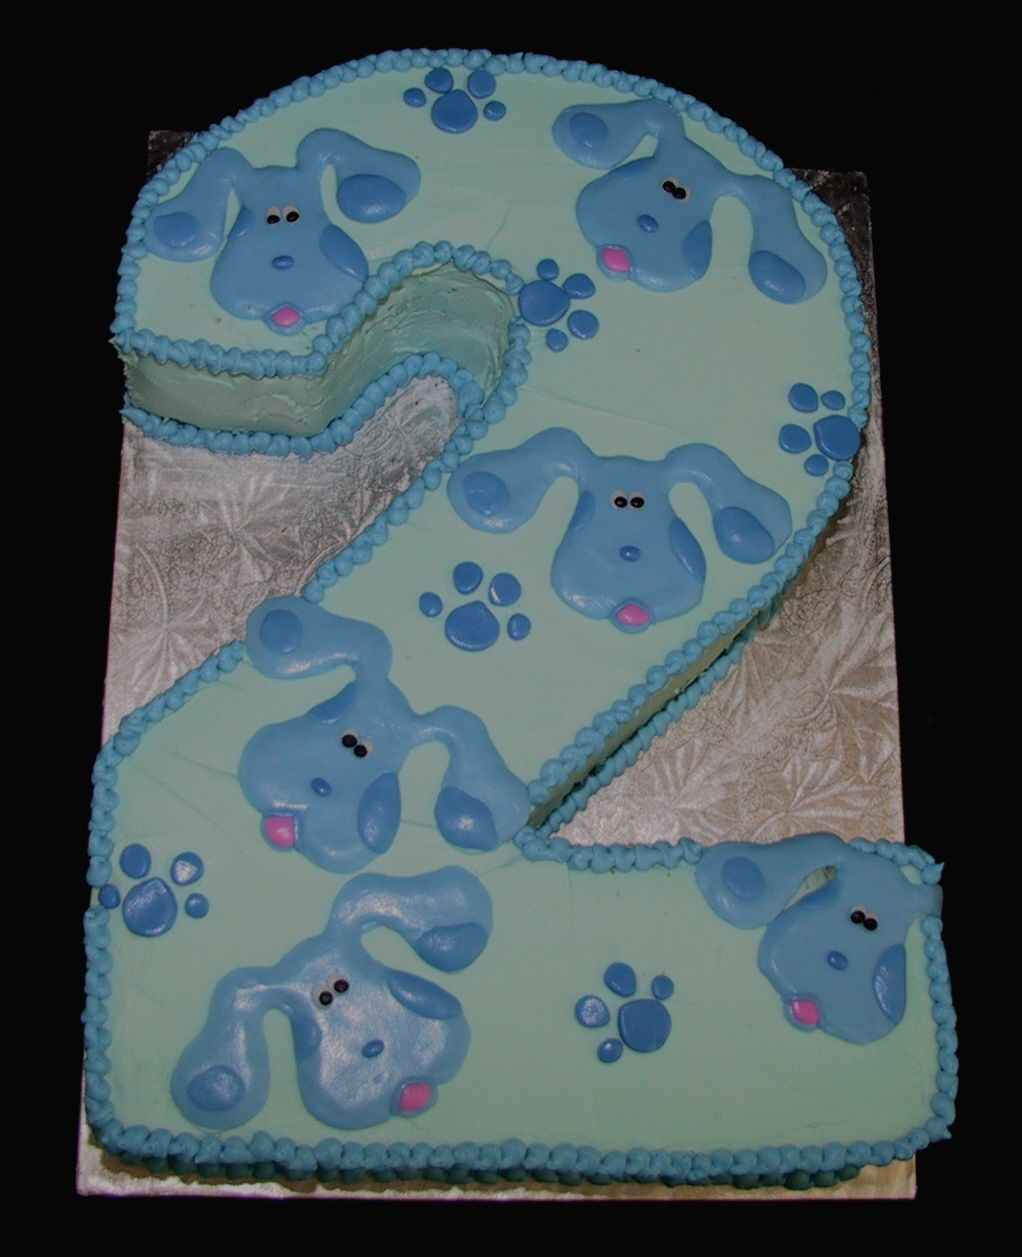 blues clues 2 cake brought to you by the letter m pinterest